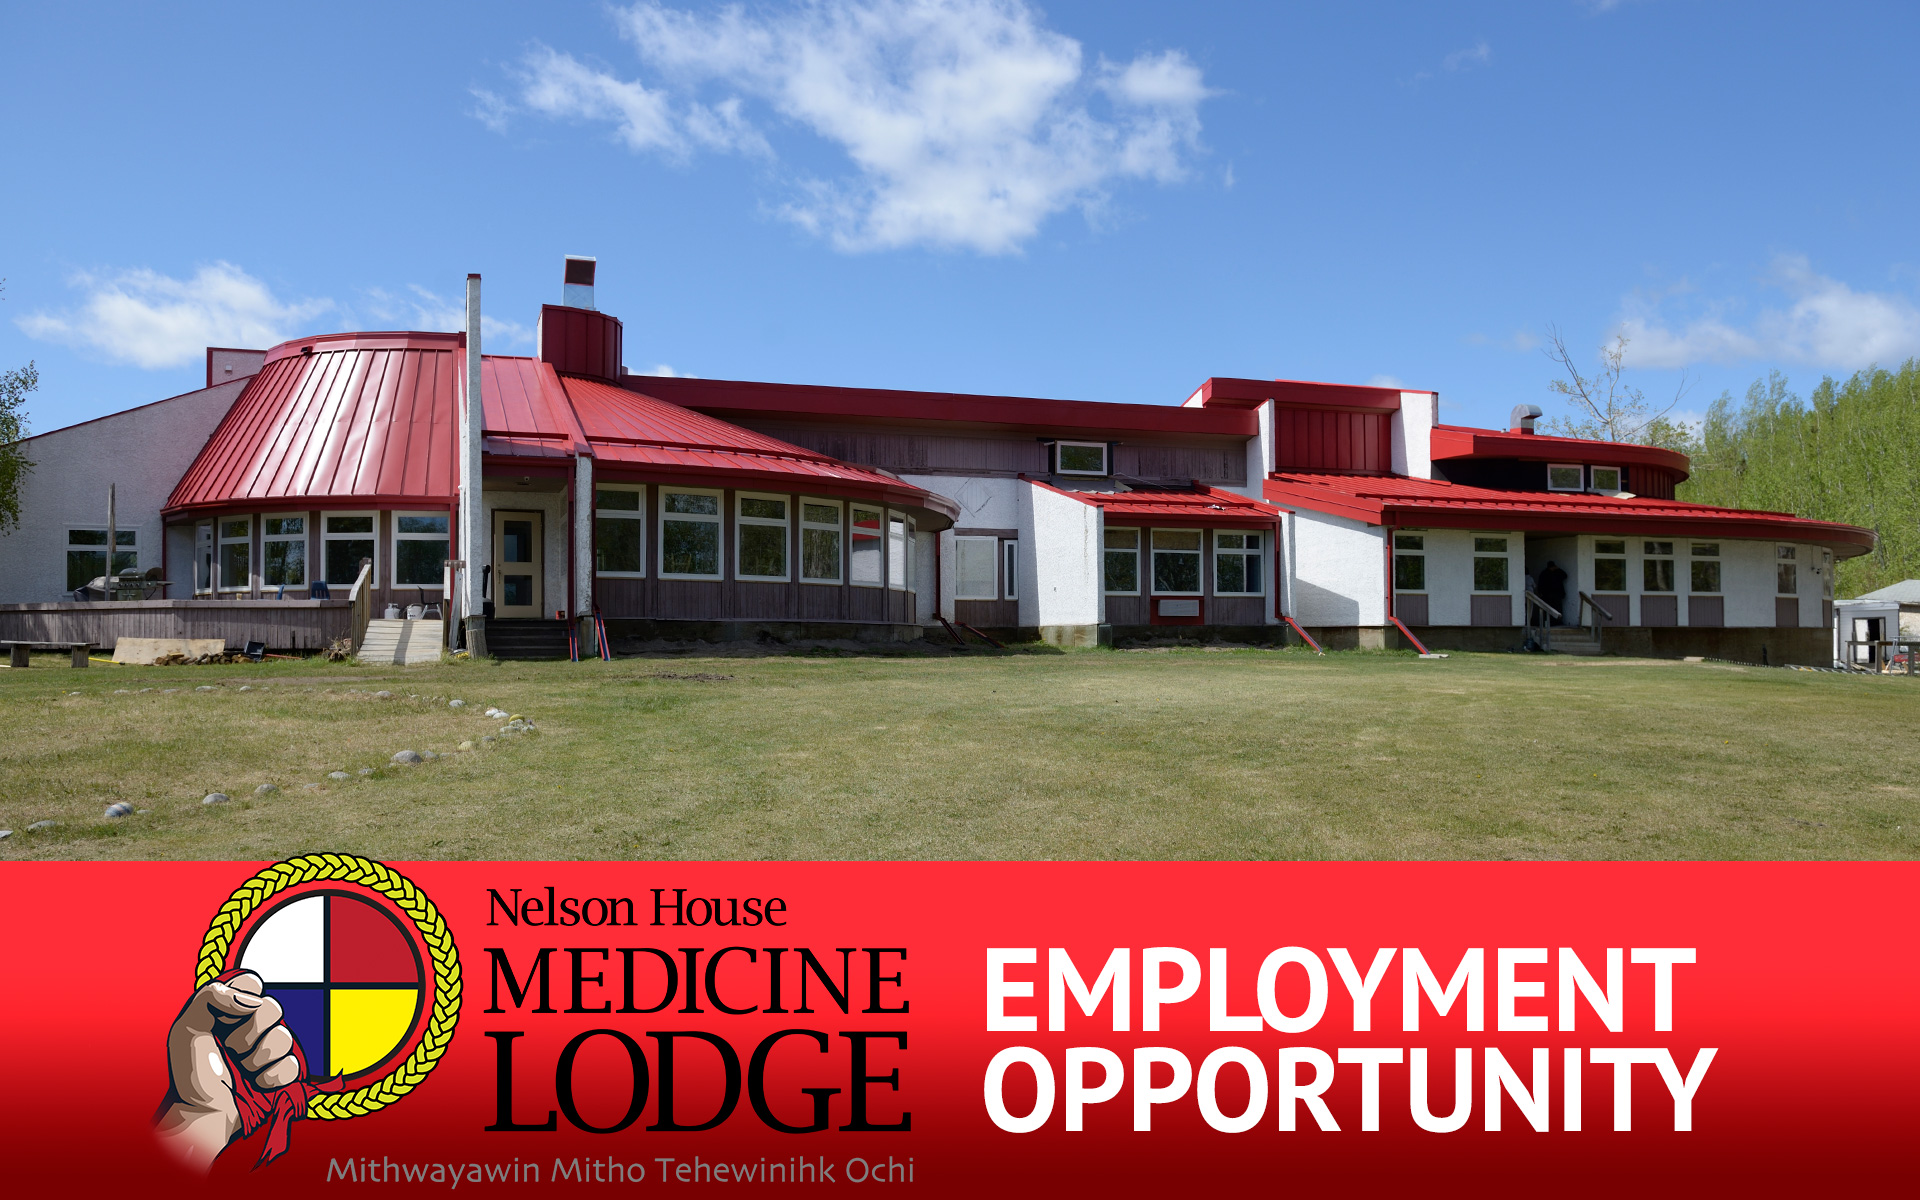 Nelson House Medicine Lodge Employment Opportunity